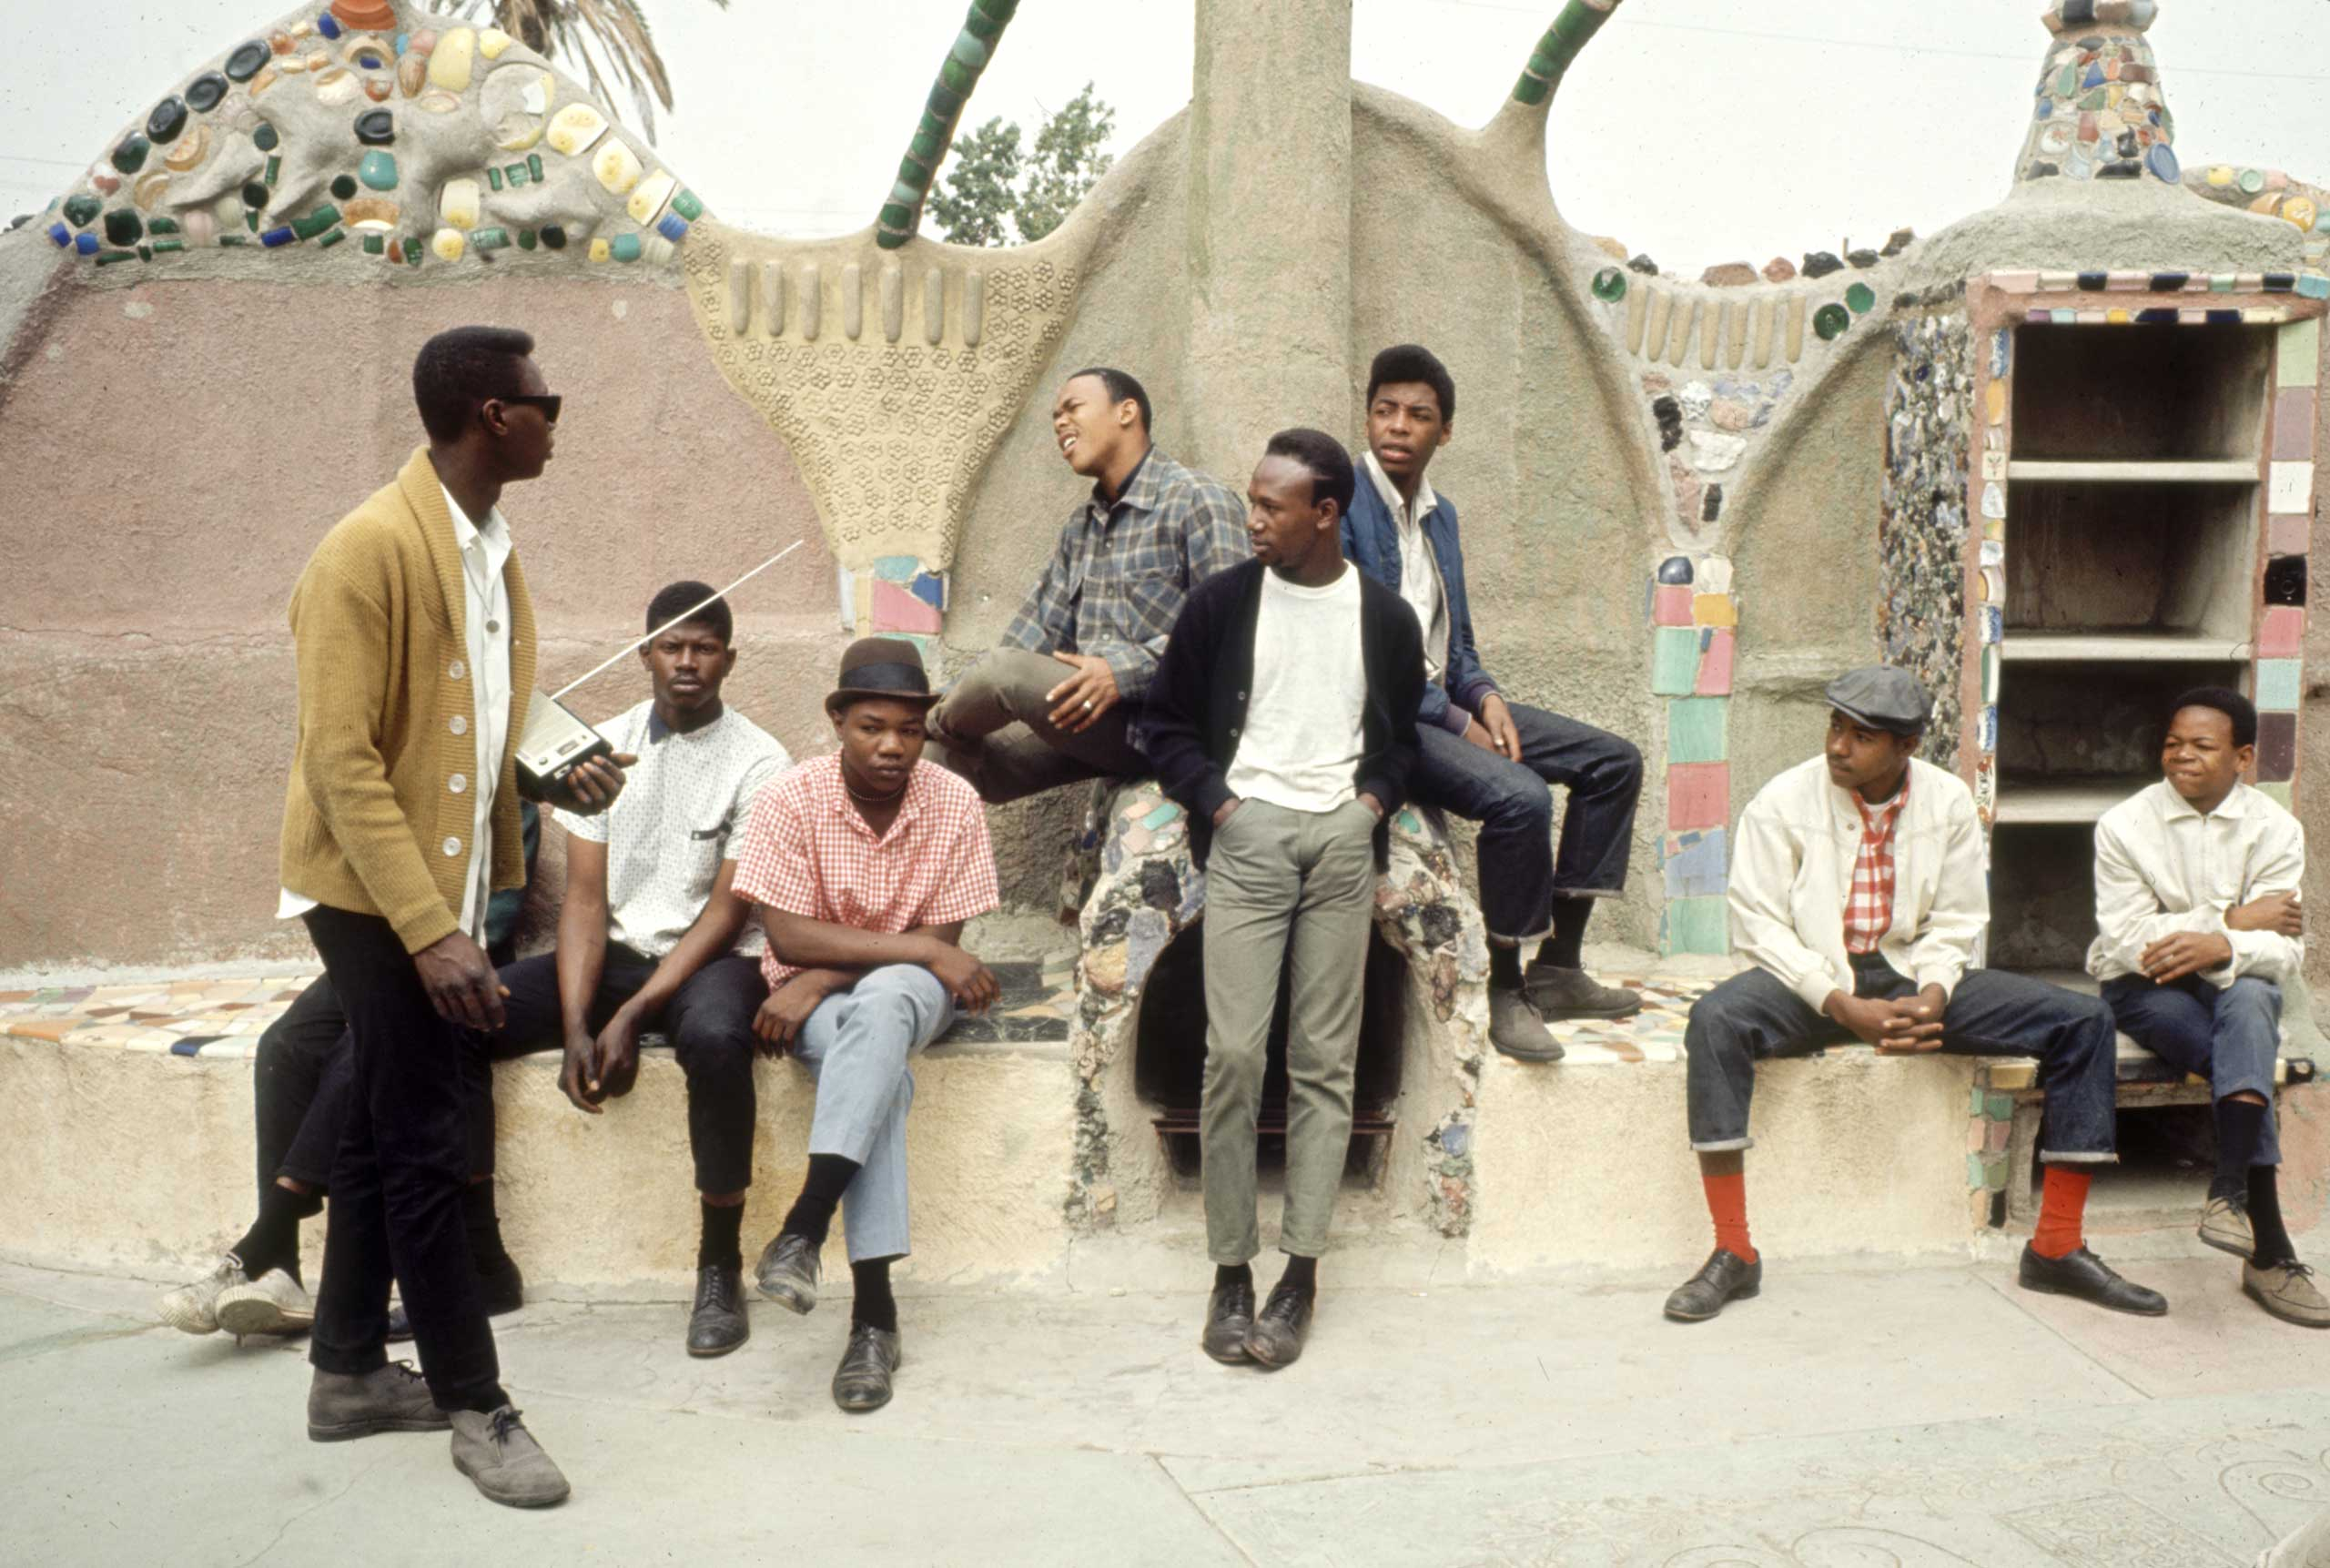 <b>Not published in LIFE.</b> Young men hang out near Simon Rodia's Watts Towers, 1966.